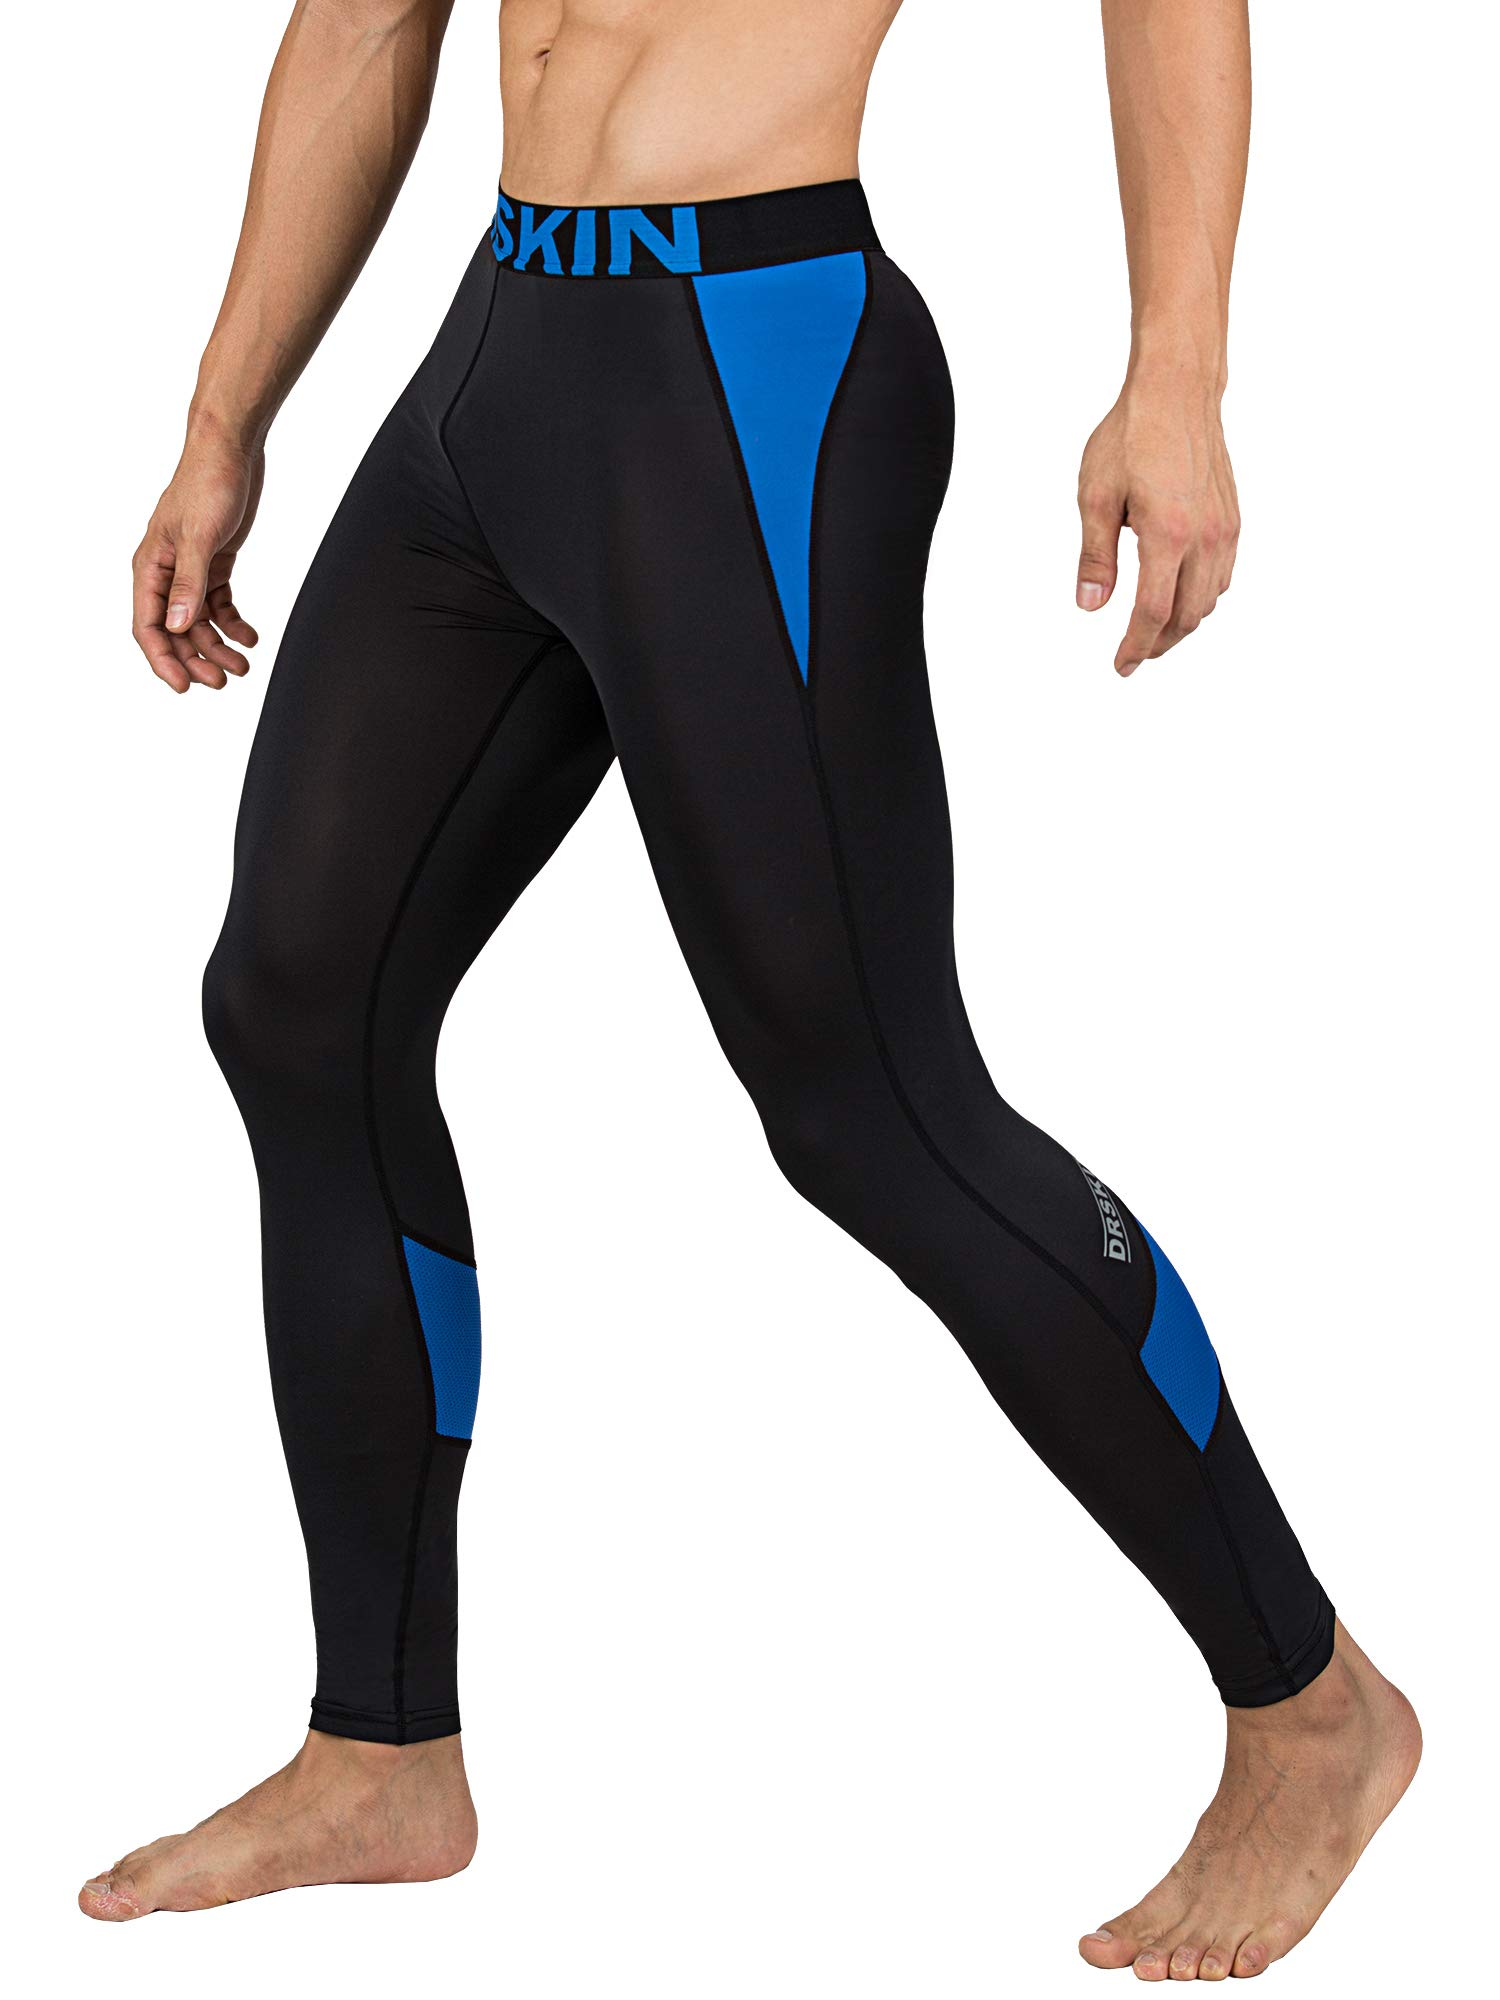 DRSKIN 1~3 Pack Men's Compression Dry Cool Sports Tights Pants Baselayer Running Leggings Yoga (Packs of 1, 2, or 3 Deals) (Came B-BU03, S) by DRSKIN